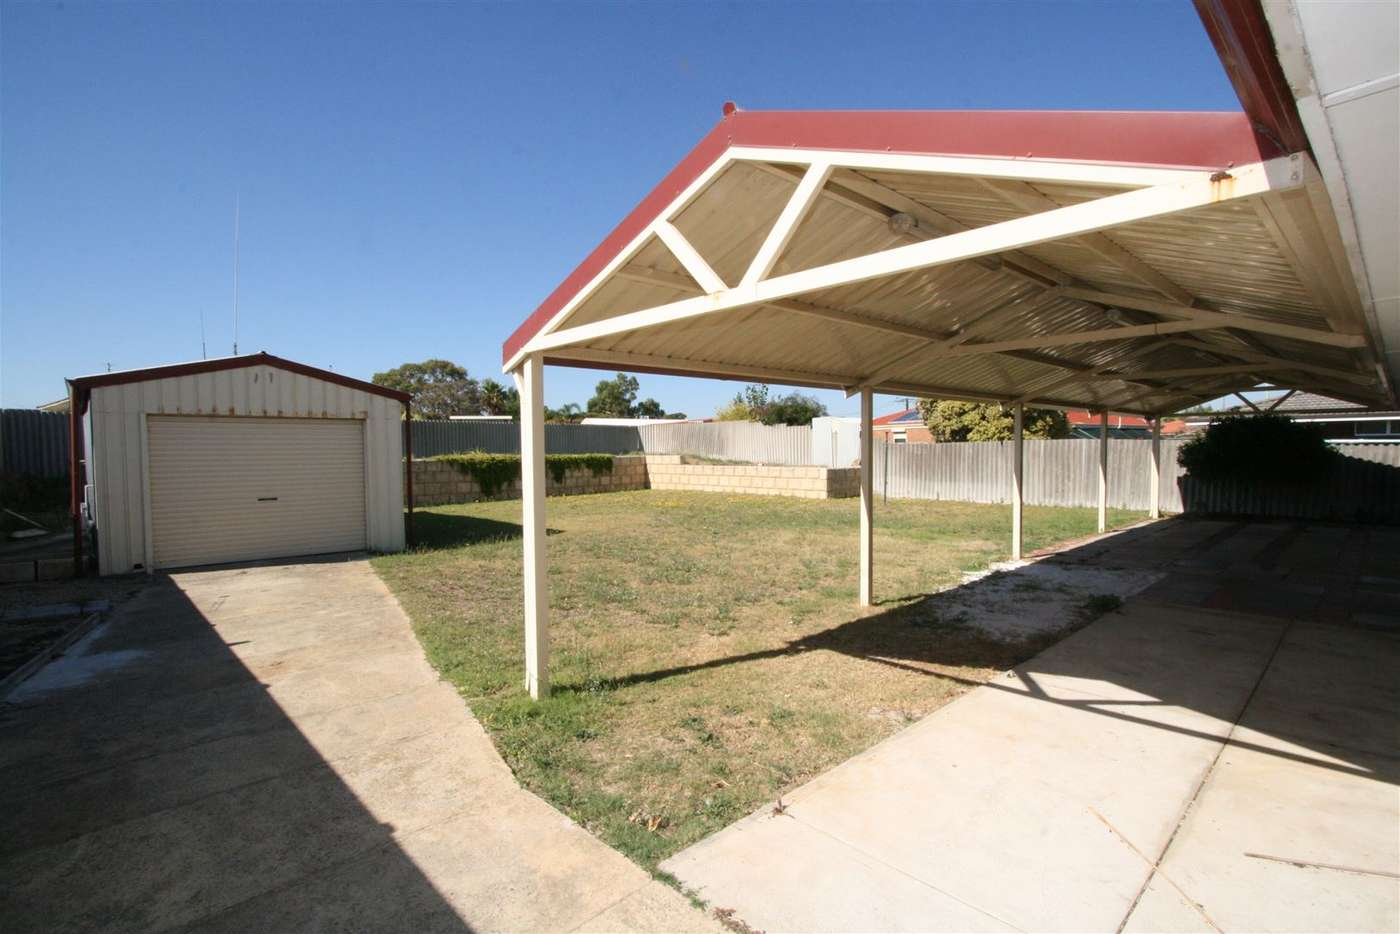 Main view of Homely house listing, 44 Wavelea St, Safety Bay WA 6169